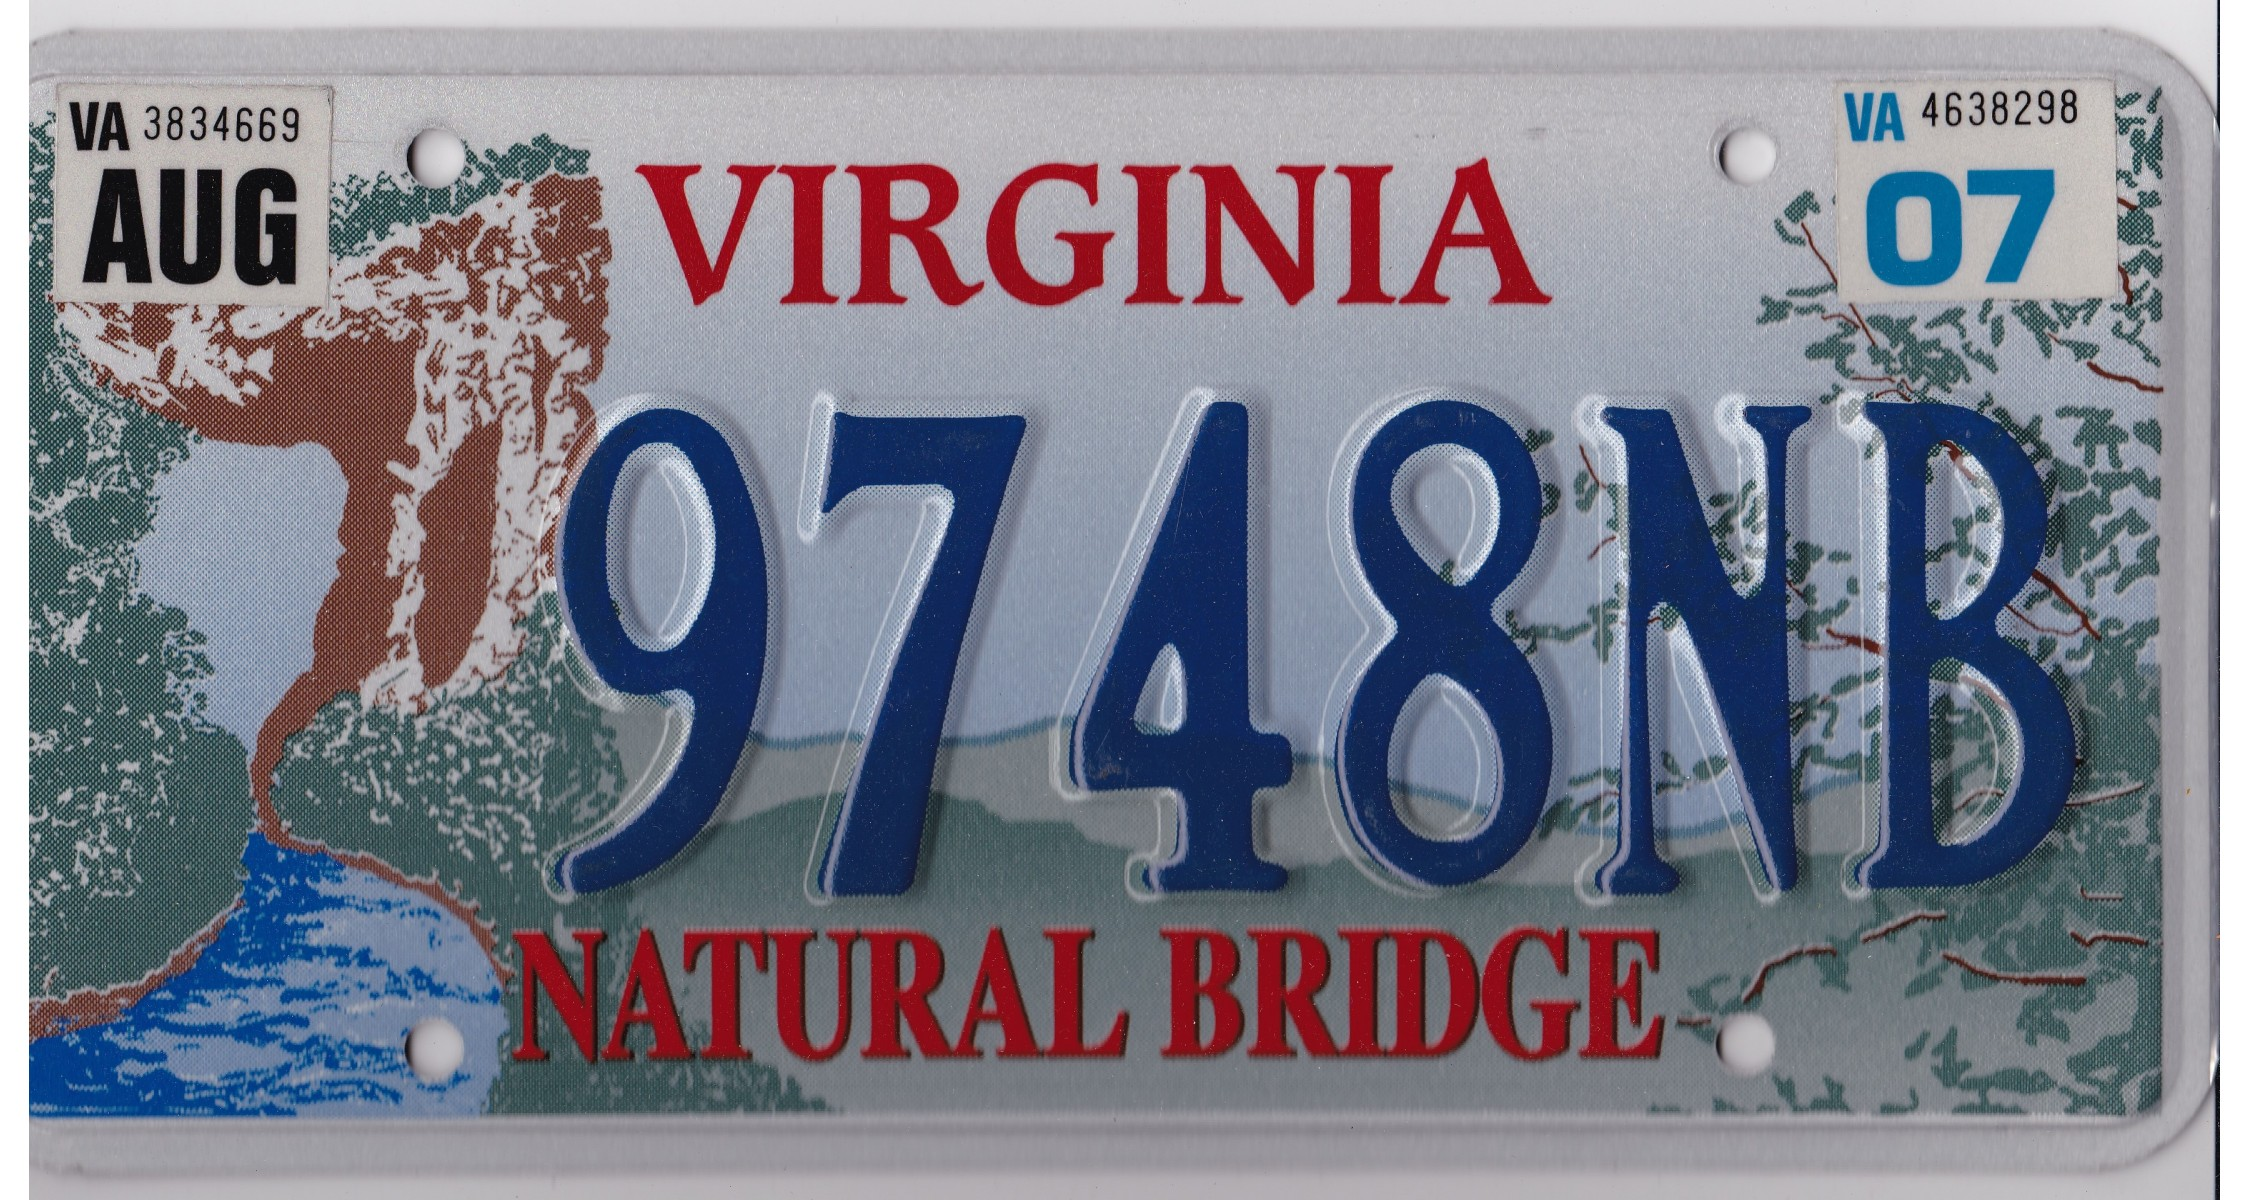 Antique License Plates & Va Historic License Plates - Best Plate 2018